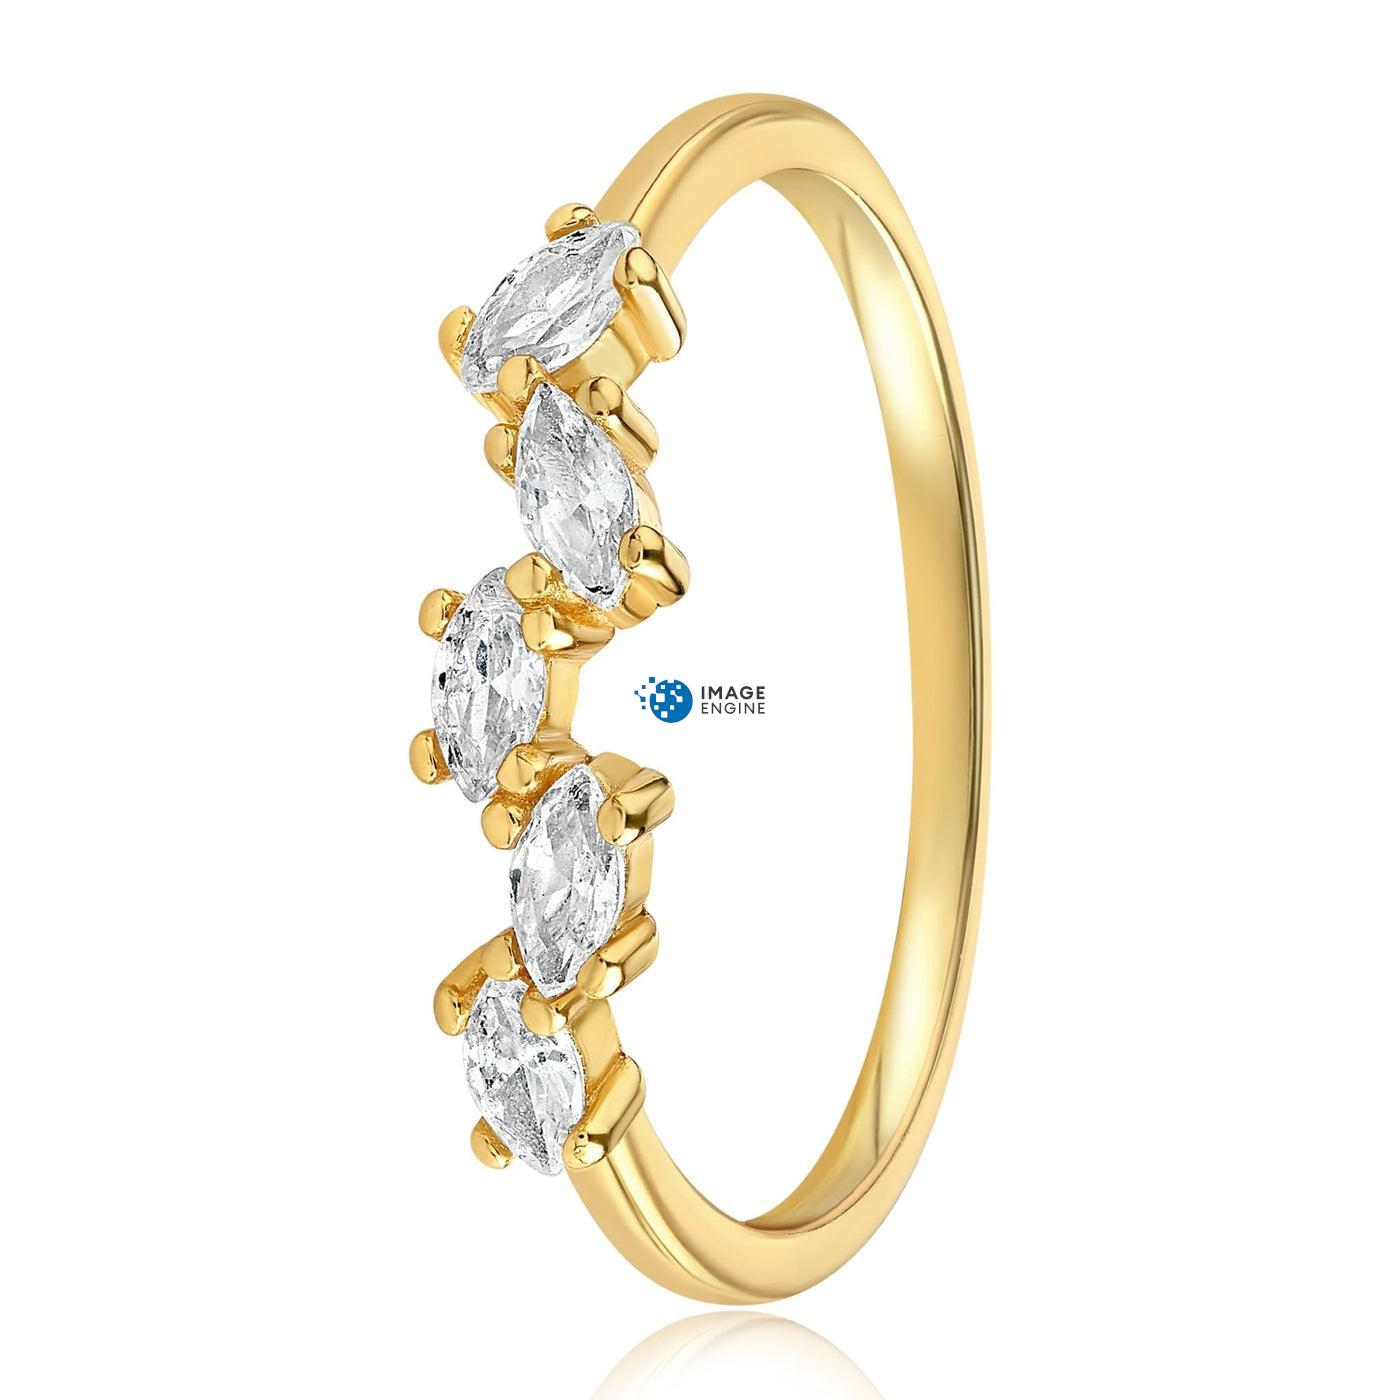 Genna Round Cut Ring - Side View - 18K Yellow Gold Vermeil